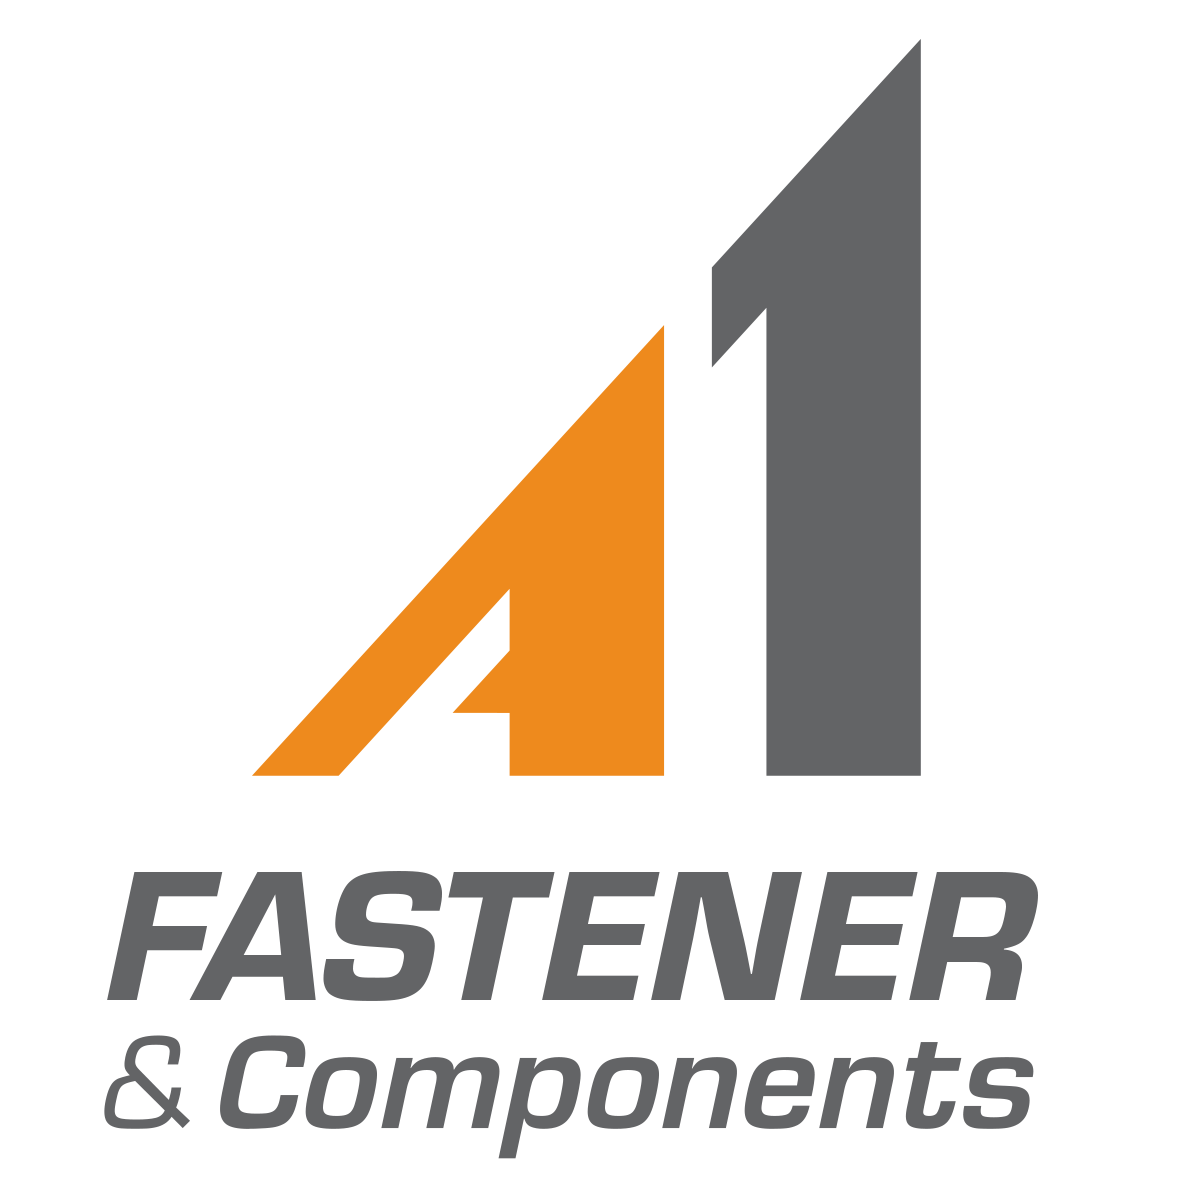 A1 Fastener | Fasteners and Components